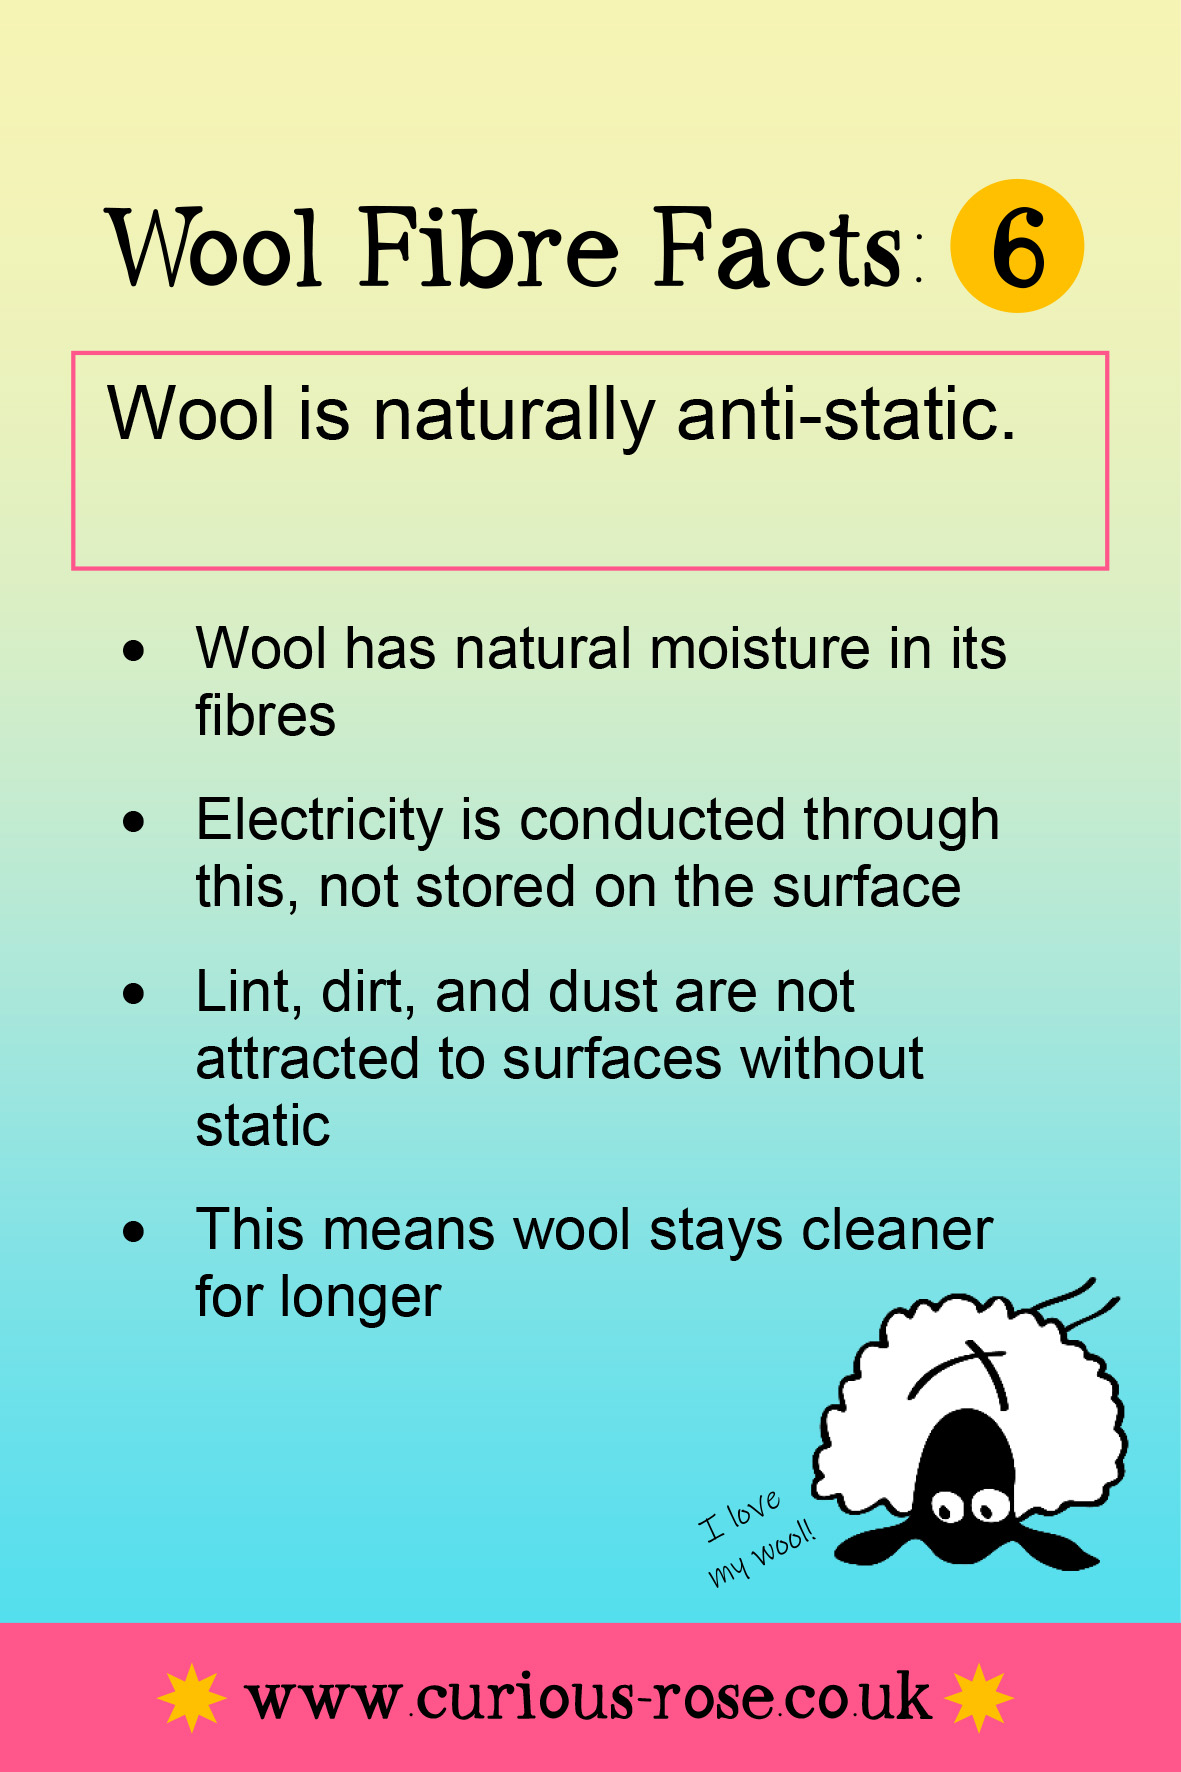 Wool Fibre Facts 6.jpg